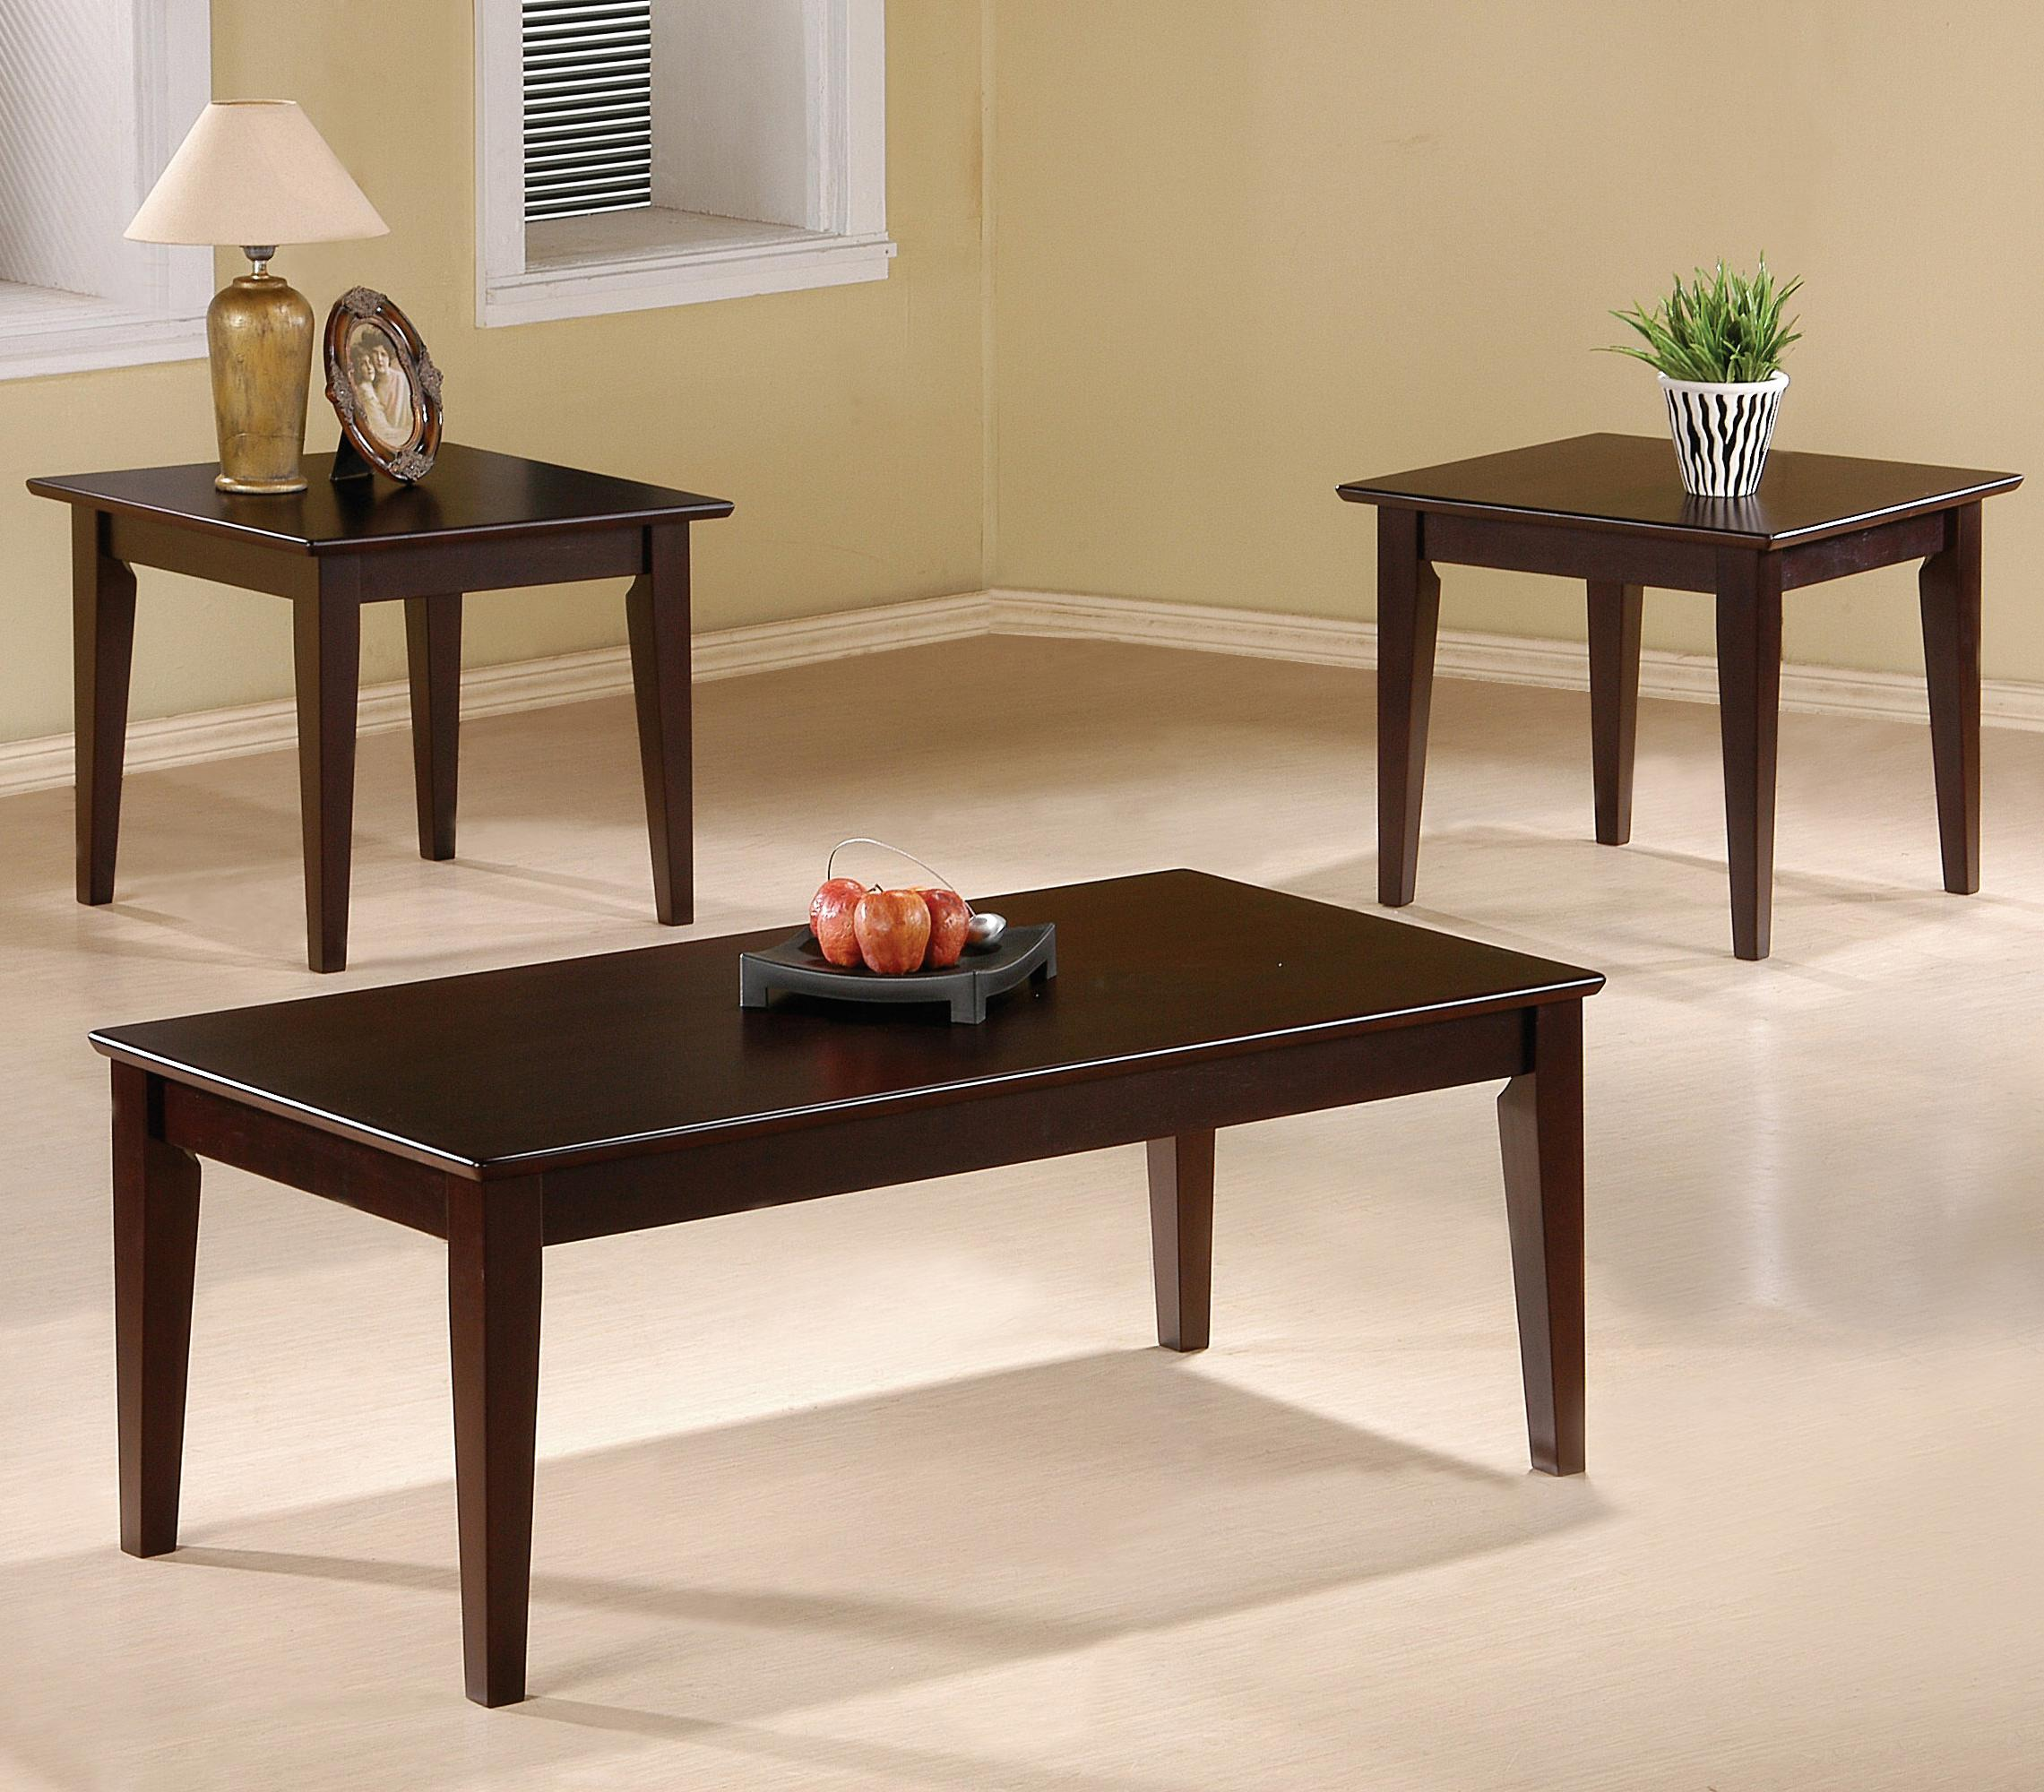 5880 occasional table sets 3 piece occasional table set with tapered legs